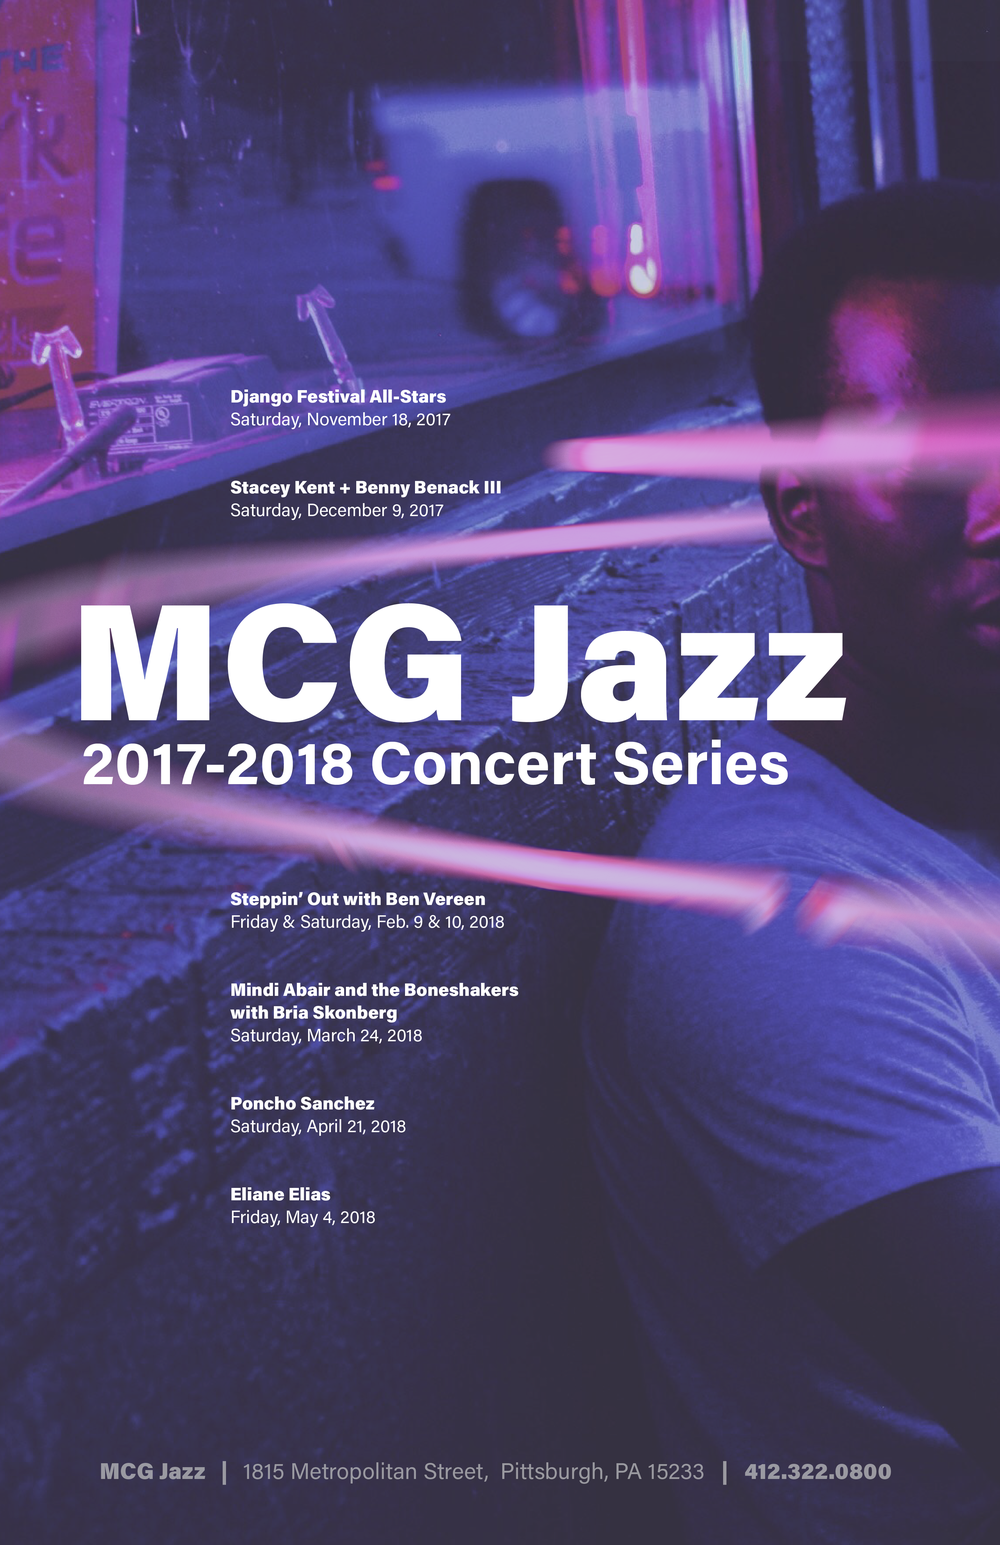 MCGJazzImage2 [Recovered]-09.png